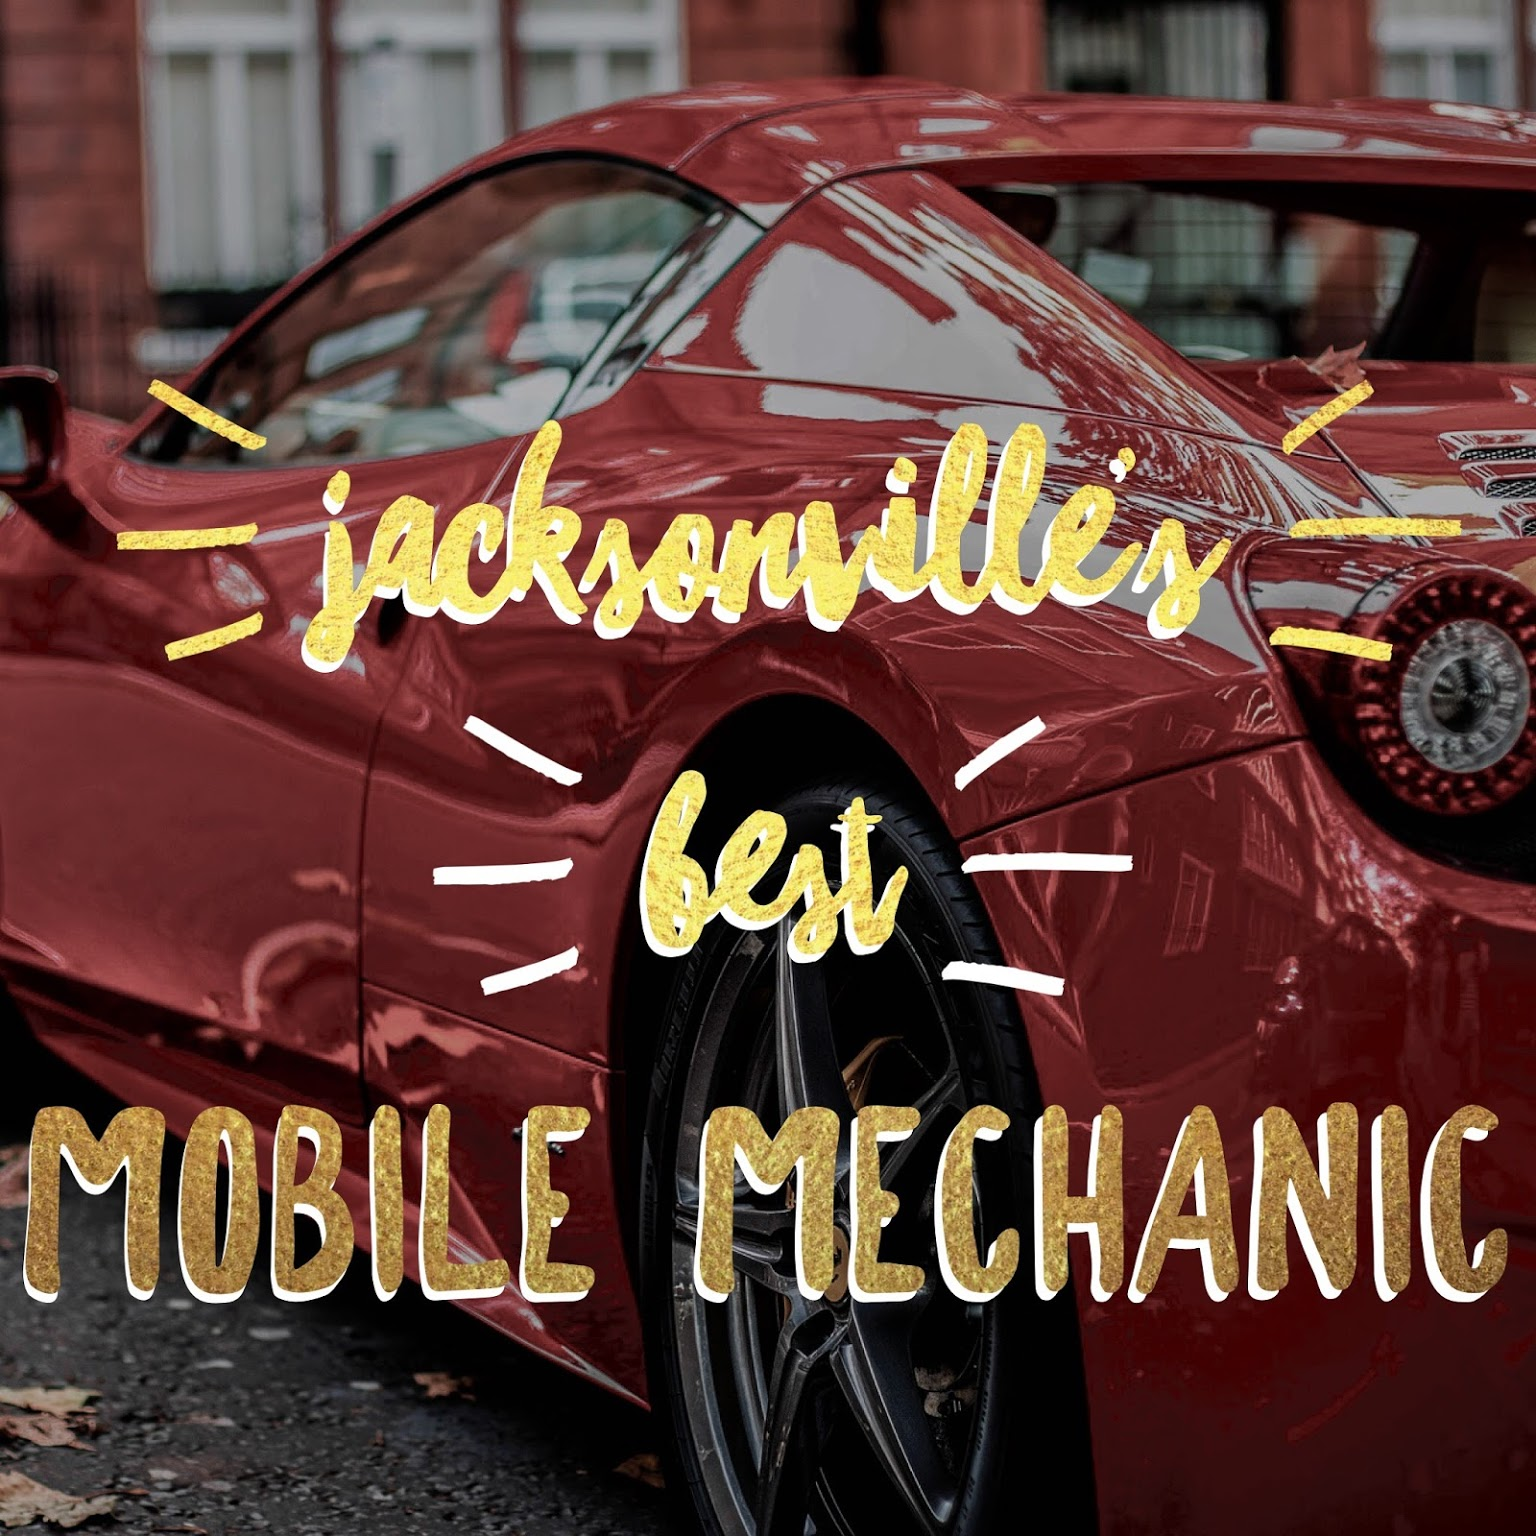 JACKSONVILLE'S BEST MOBILE MECHANIC